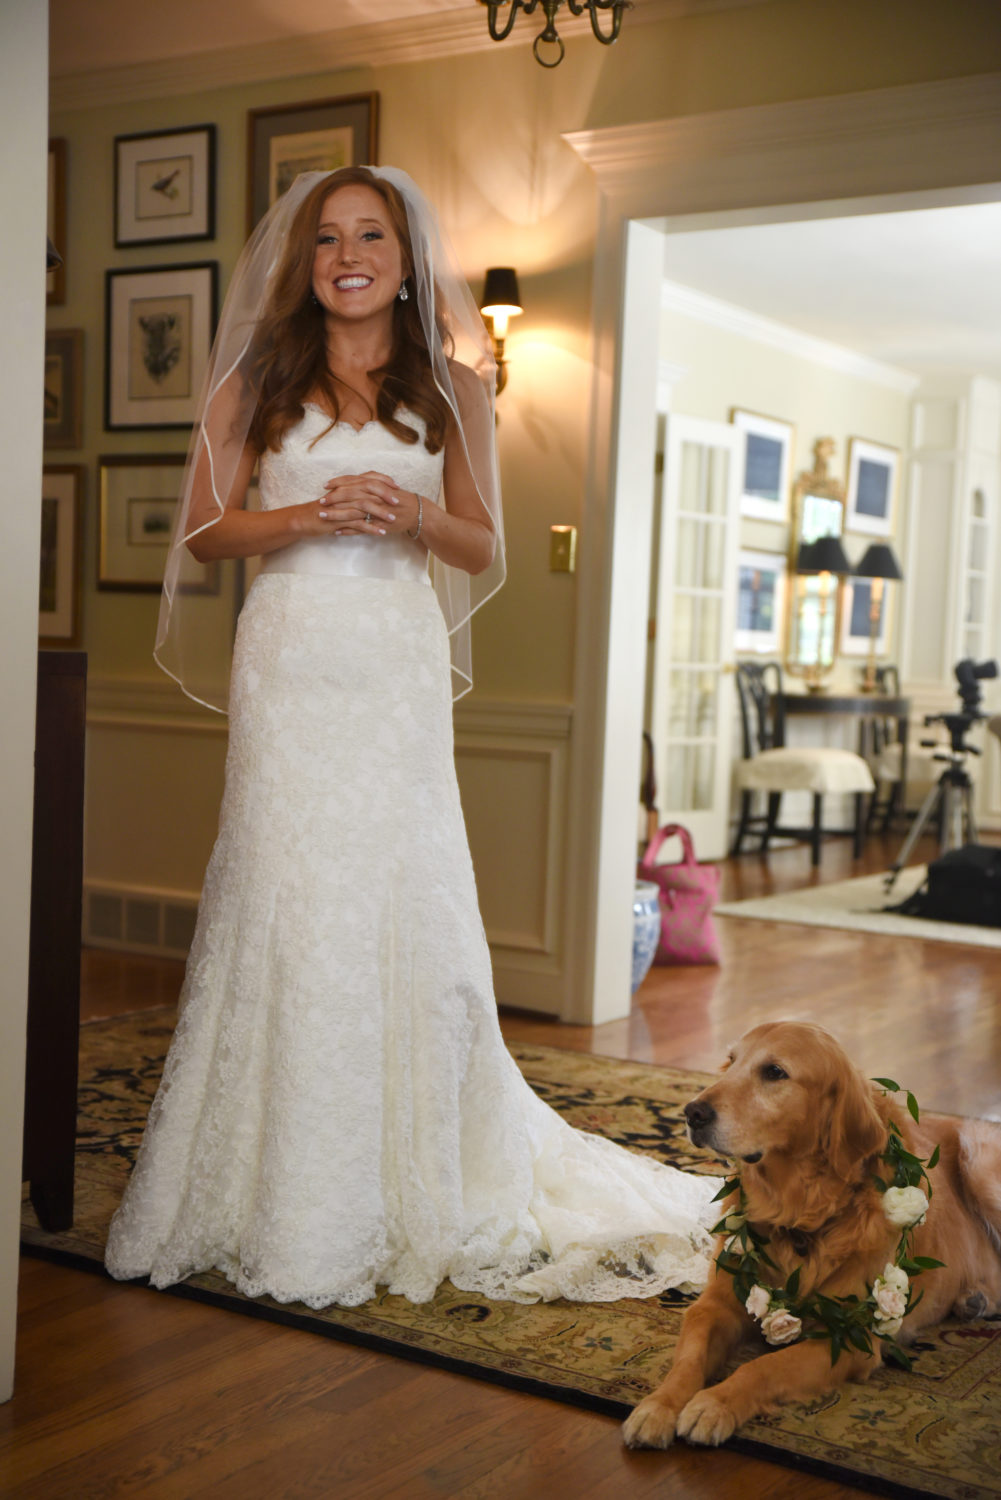 Bride and decorated wedding dog